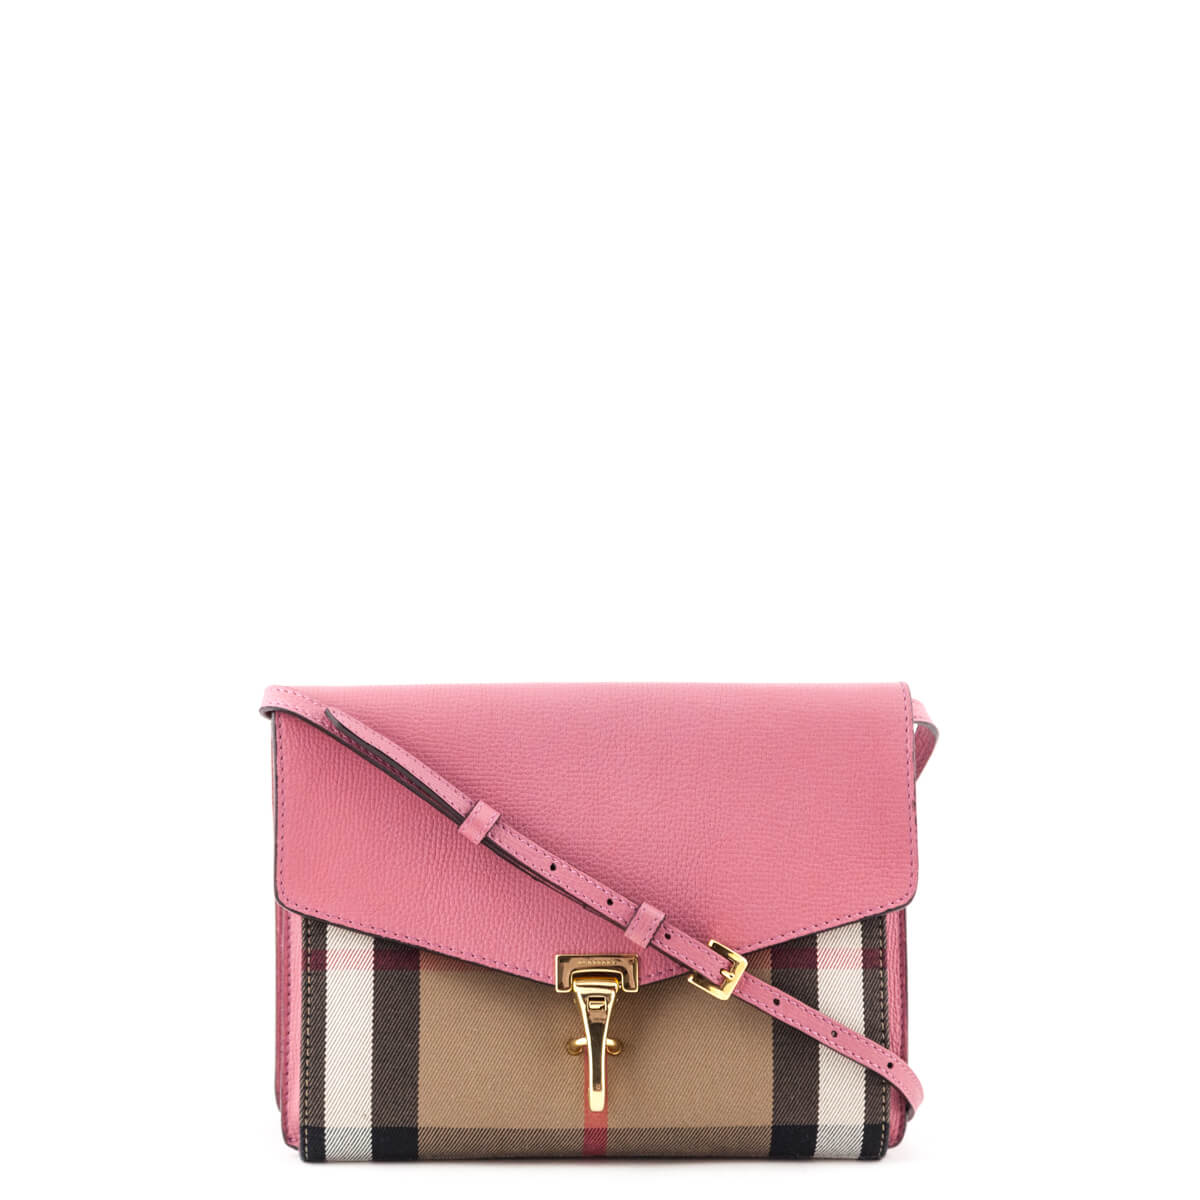 c2a1aa49d186 Burberry Pink Calfskin and House Check Small Crossbody Bag - LOVE that BAG  - Preowned Authentic ...